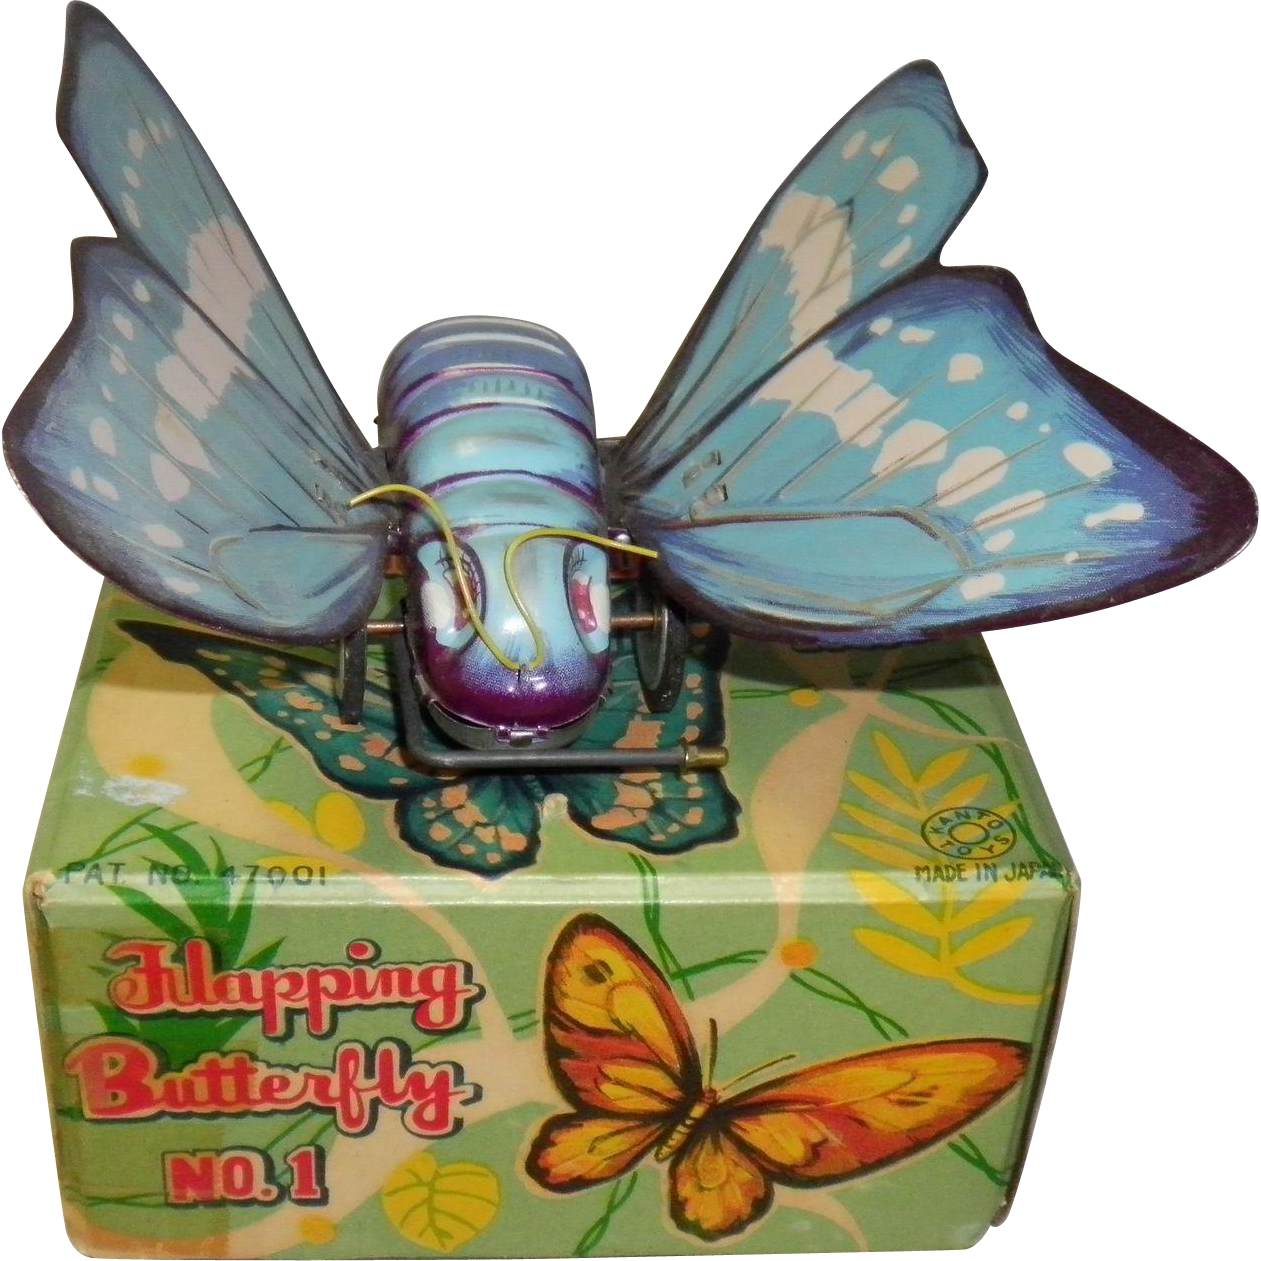 Vintage Key Wind Tin Litho Flapping Butterfly No.. 1 In Original Box